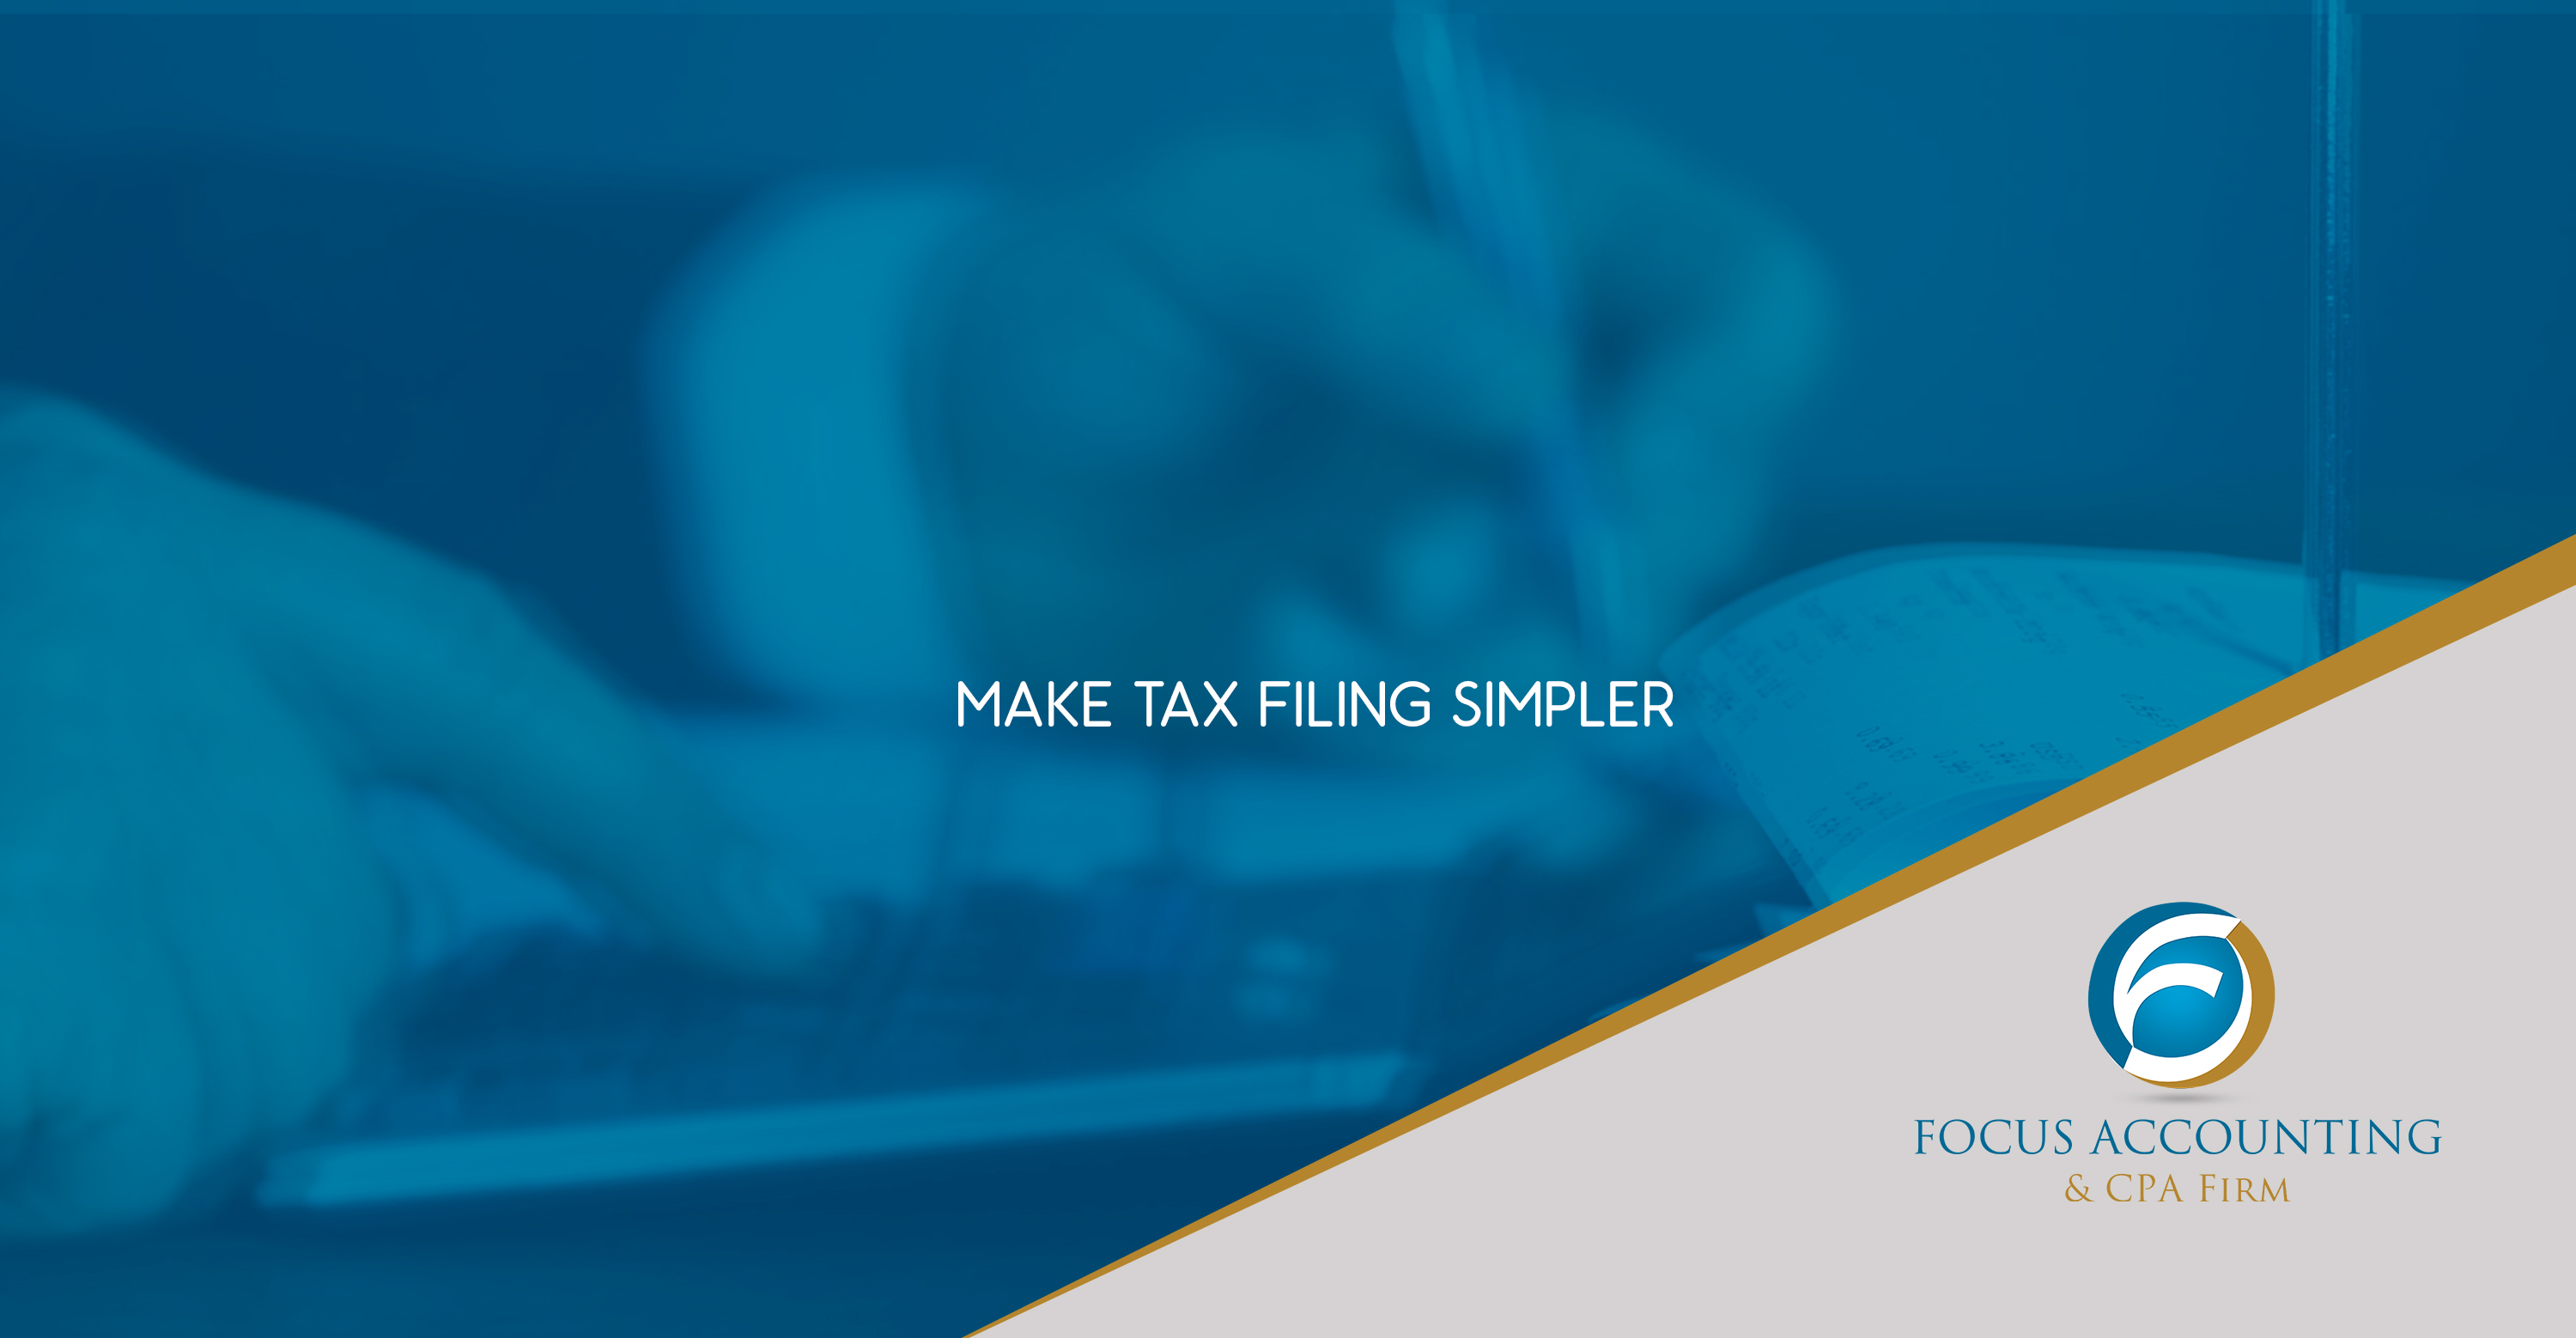 Make tax filing simpler